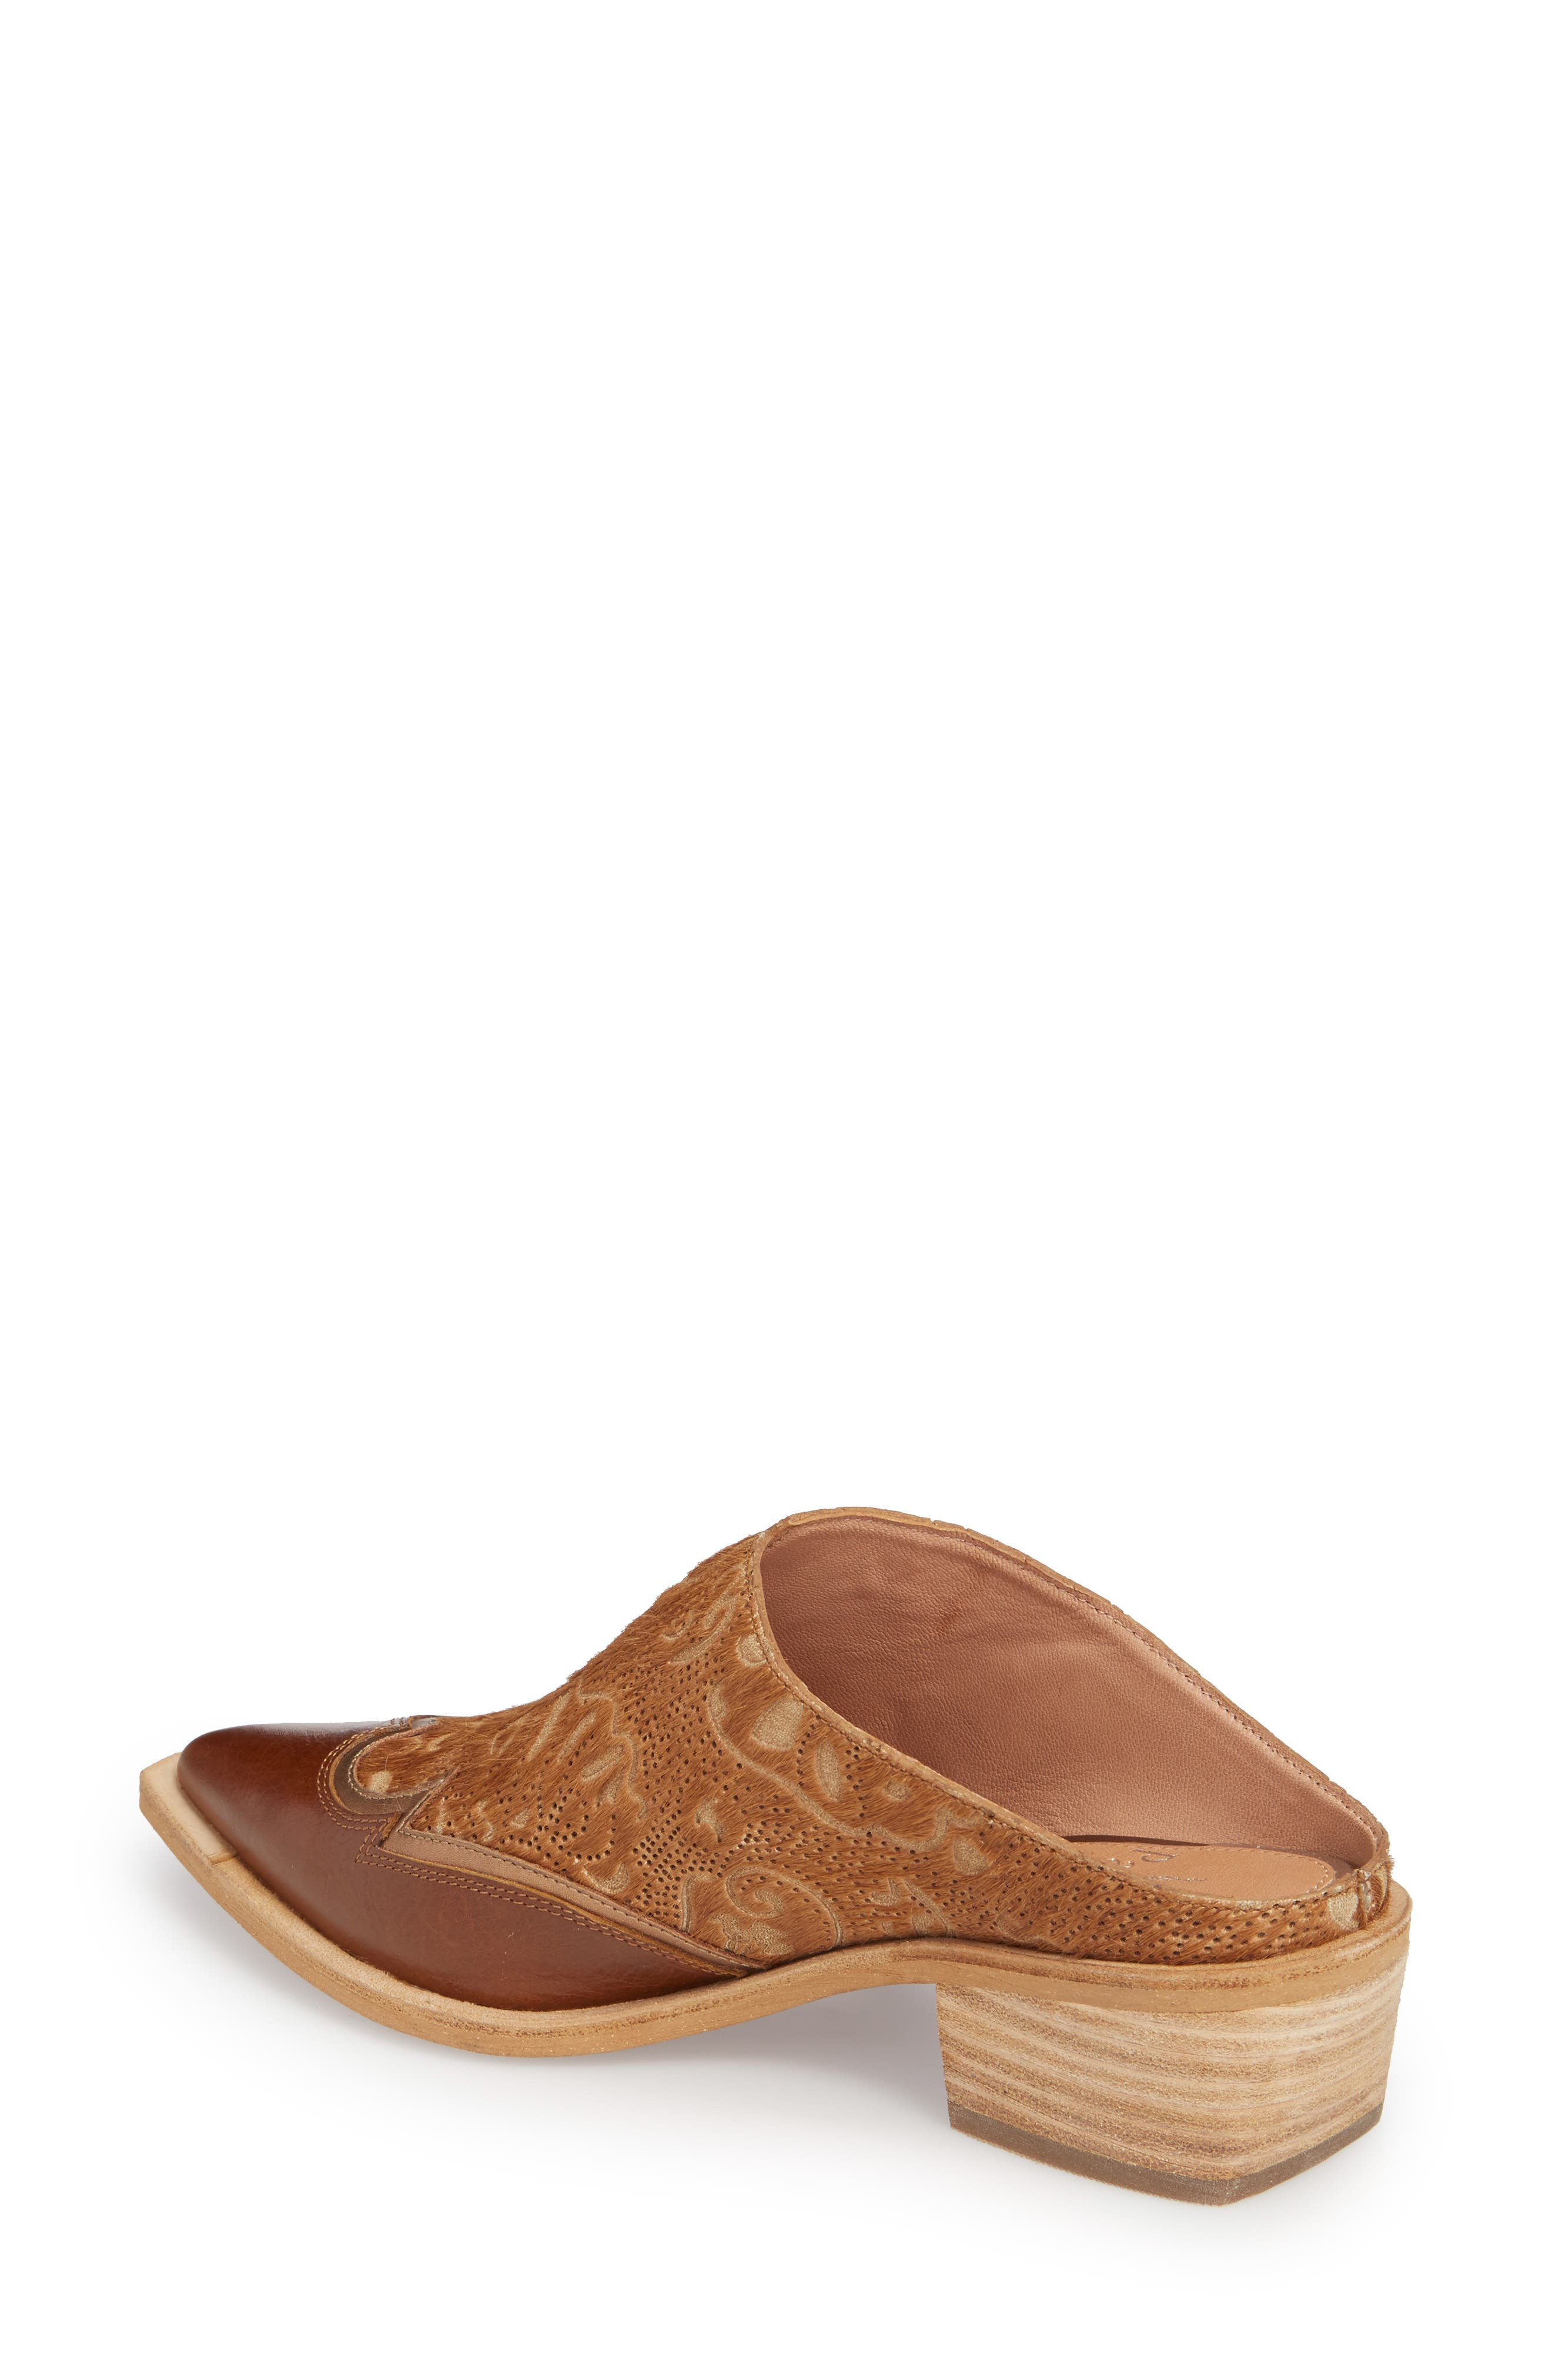 Waylon Genuine Calf Hair Western Mule,                             Alternate thumbnail 2, color,                             Camel Leather